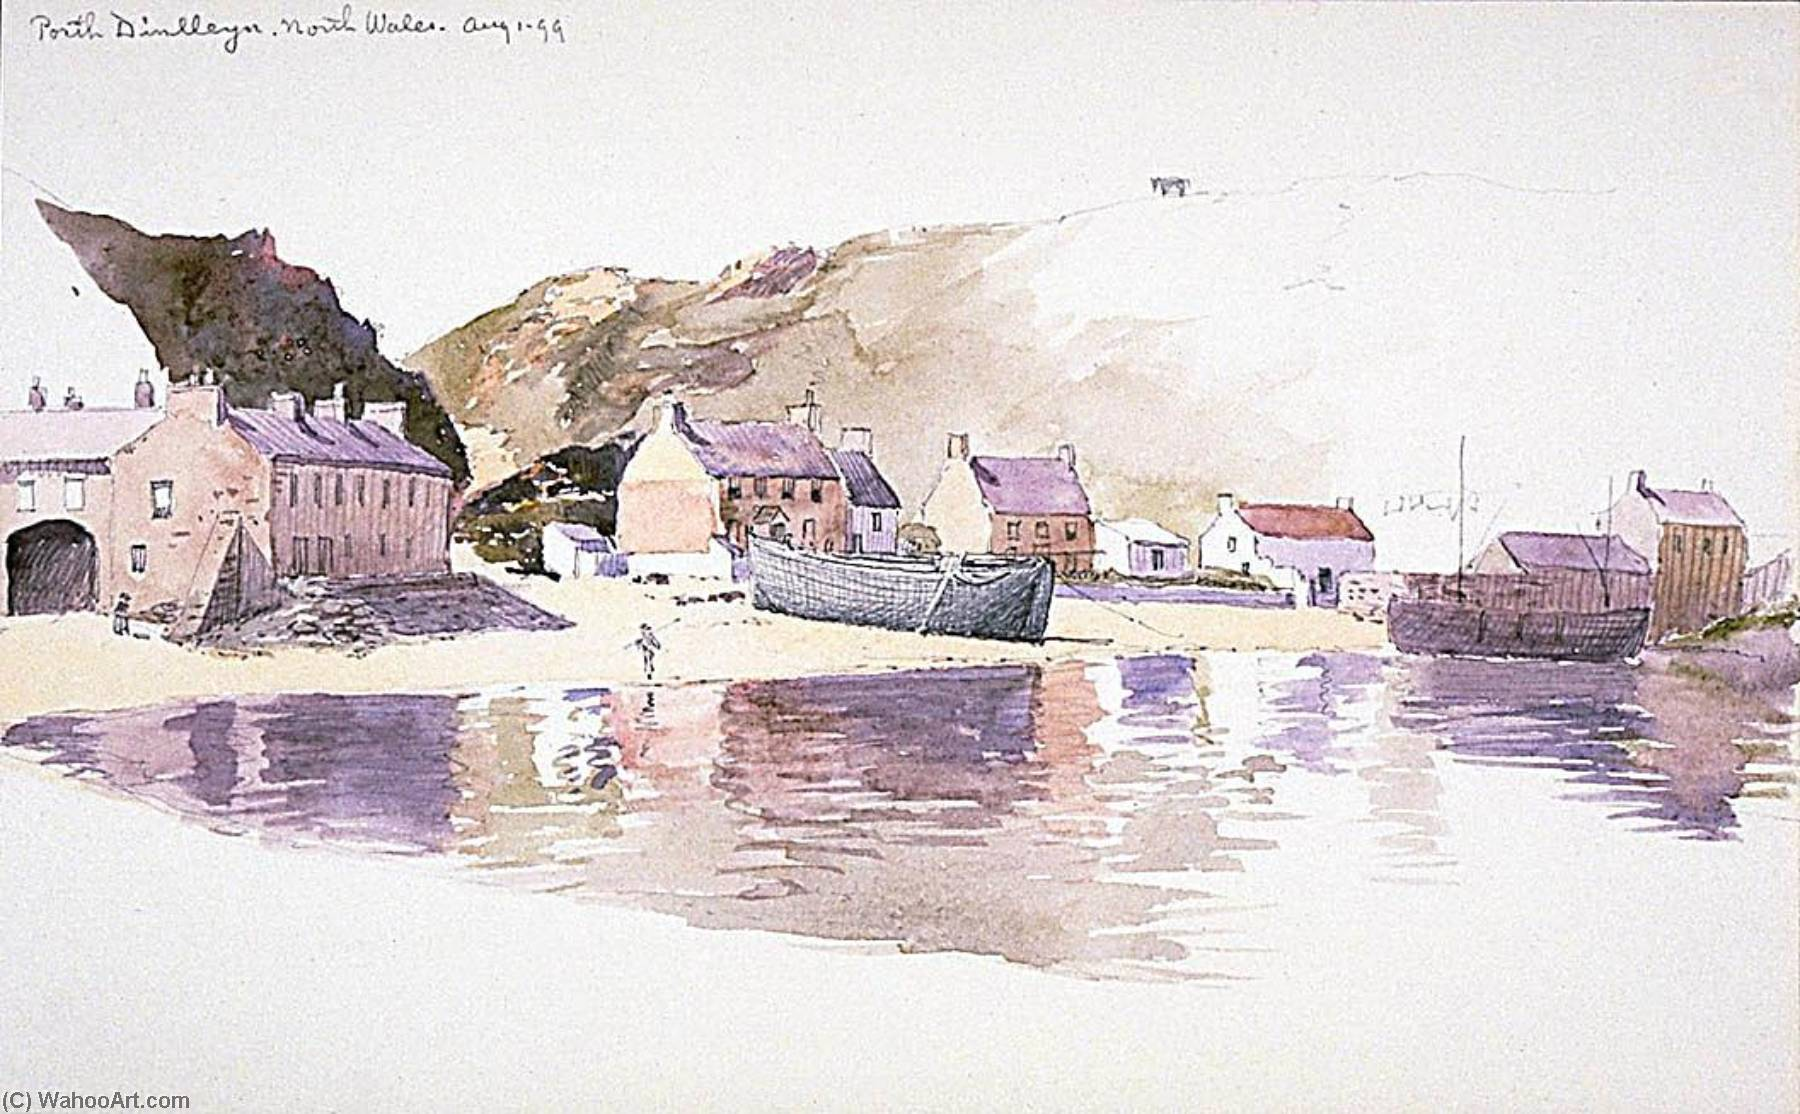 Porth Dinlleyn, North Wales, 1899 by George Elbert Burr | Museum Quality Reproductions | ArtsDot.com